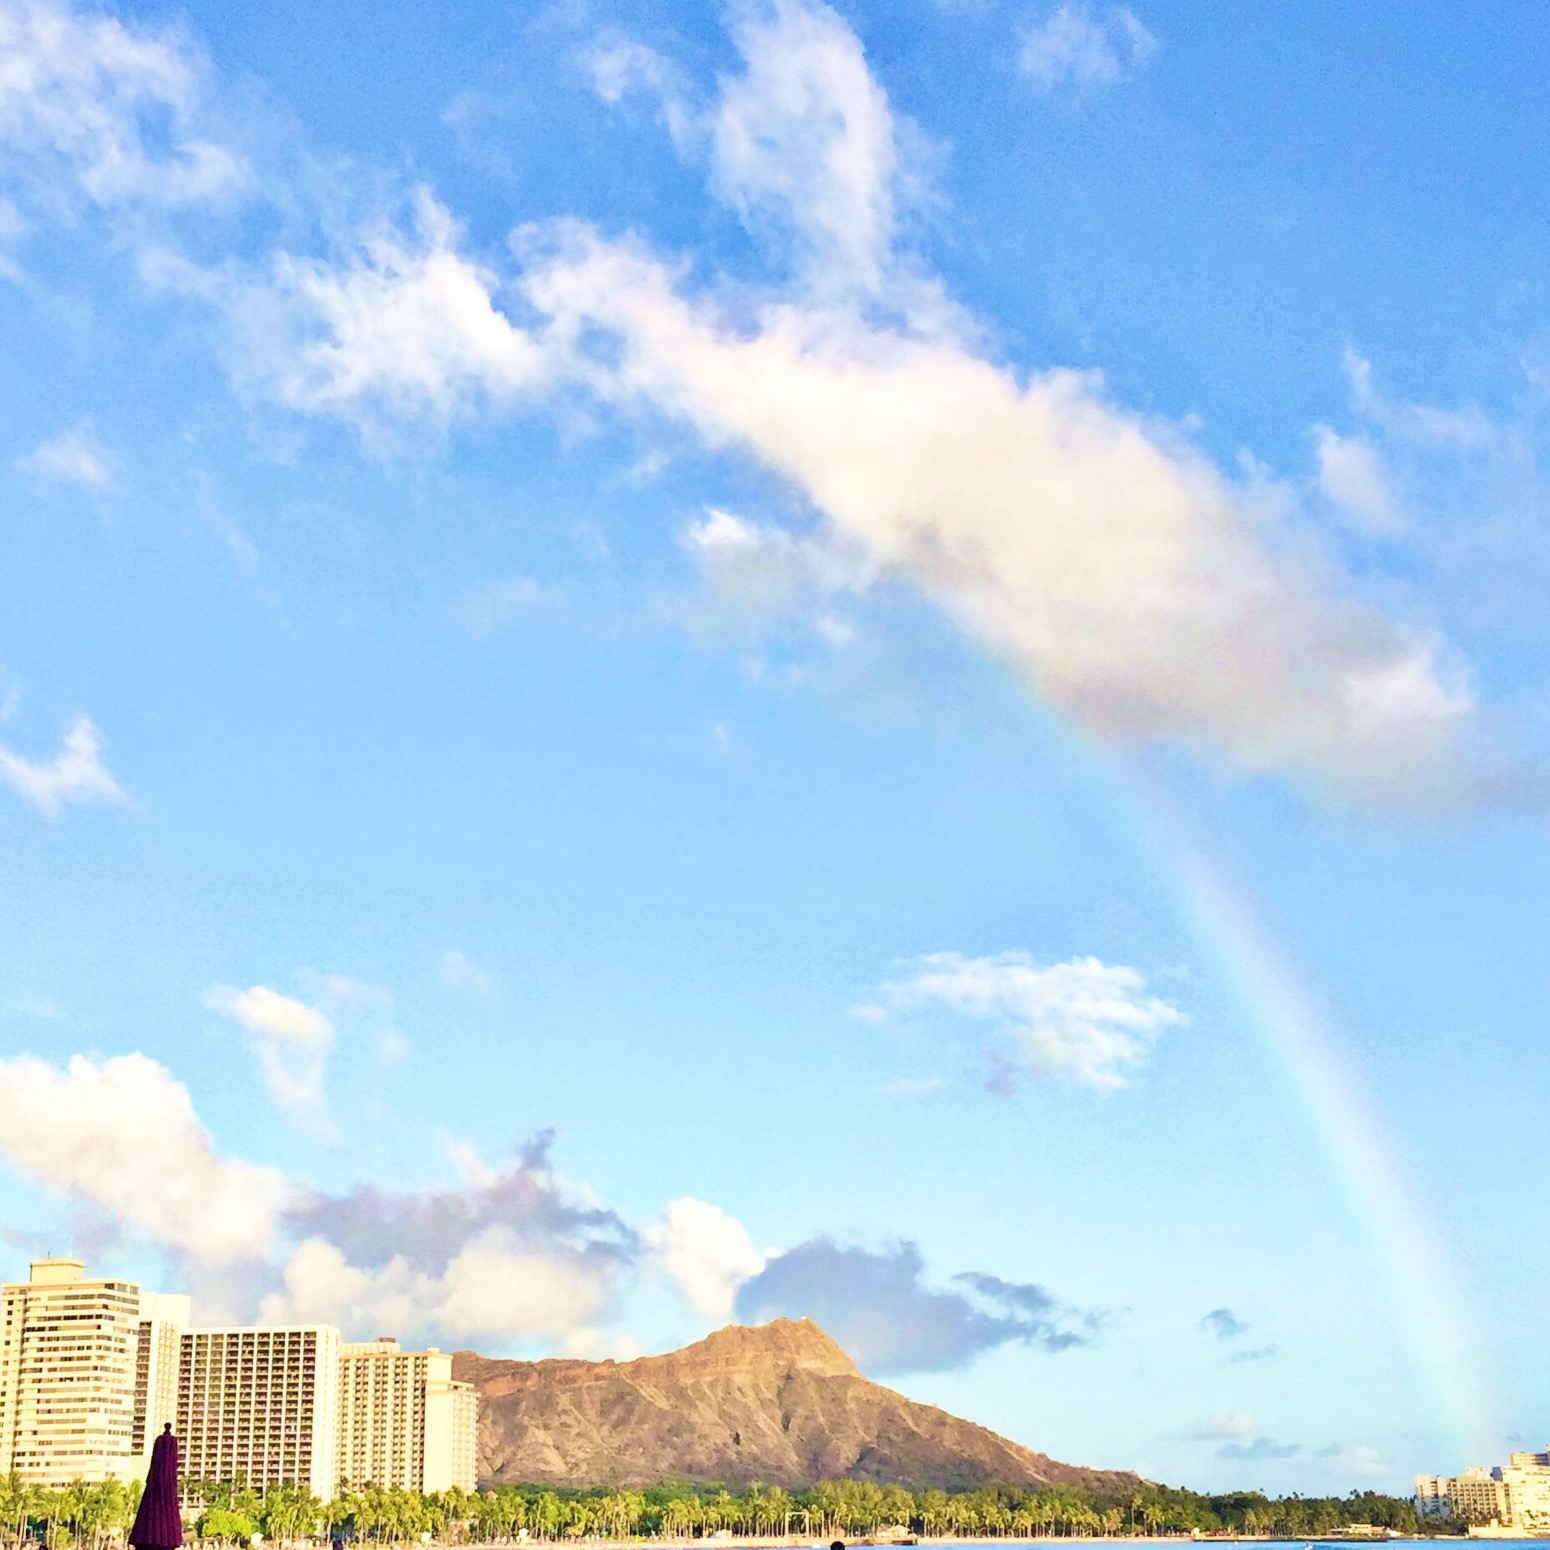 15 Money Saving Hacks For Living In Hawaii - Saving Money In Hawaii - Hawaii On The Cheap - Money Hacks - Cheap Hawaii - Communikait by Kait Hanson #moneyhack #oahu #hawaii #finances #budget